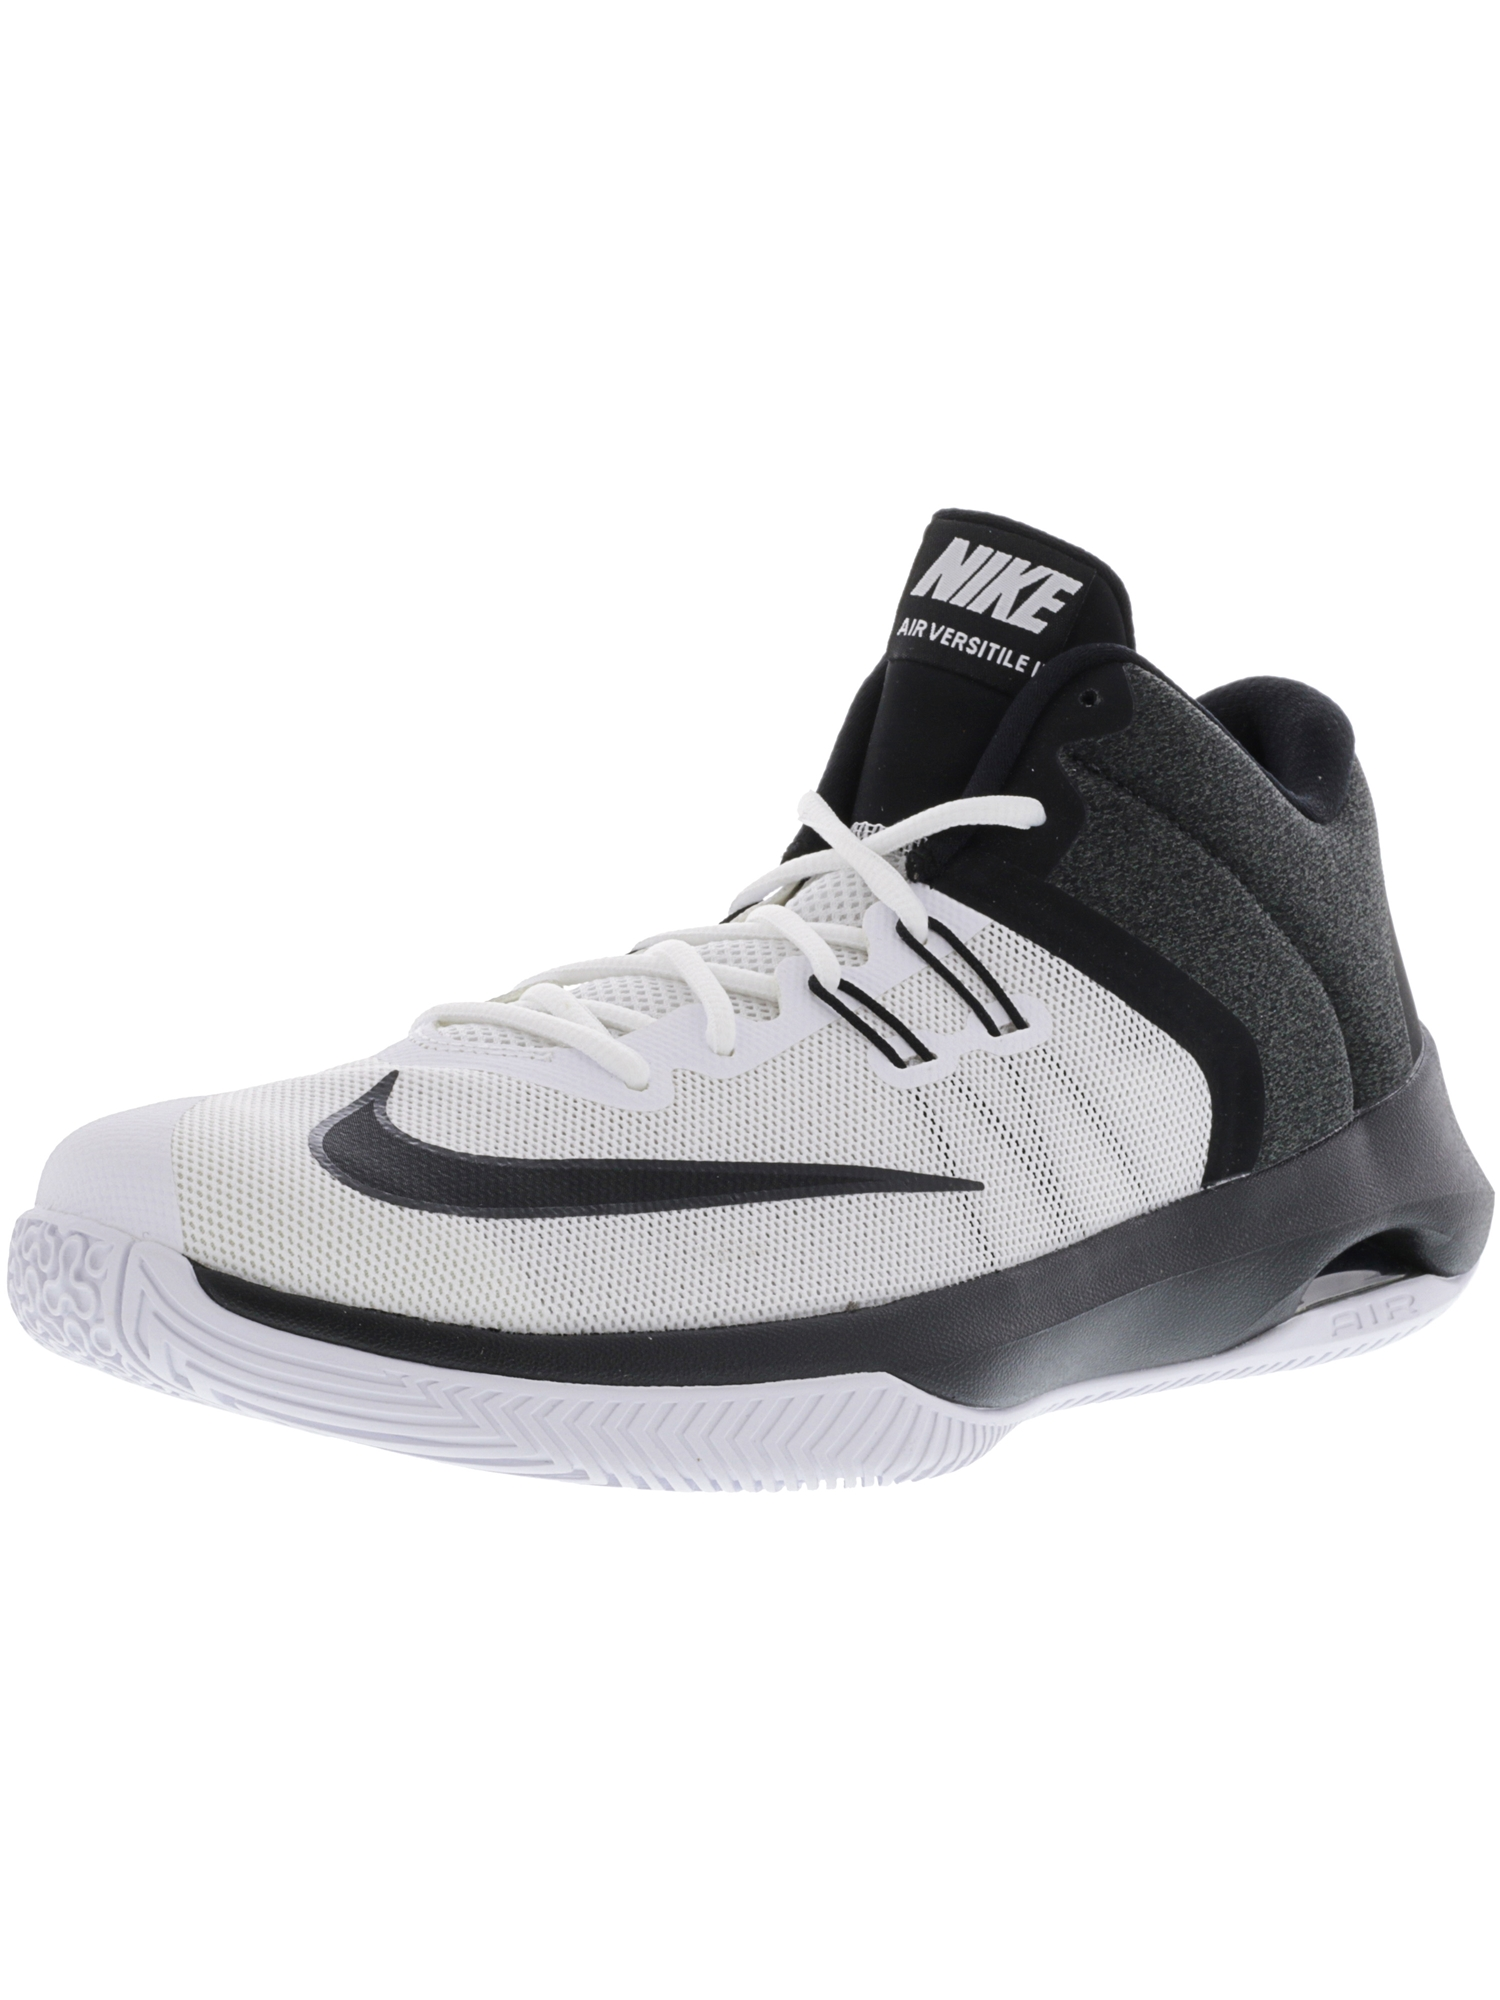 super popular a38be 6c3cb Nike Mens Air Versitile Ii Game Royal  Black White Ankle-High Basketball  Shoe - 9.5M